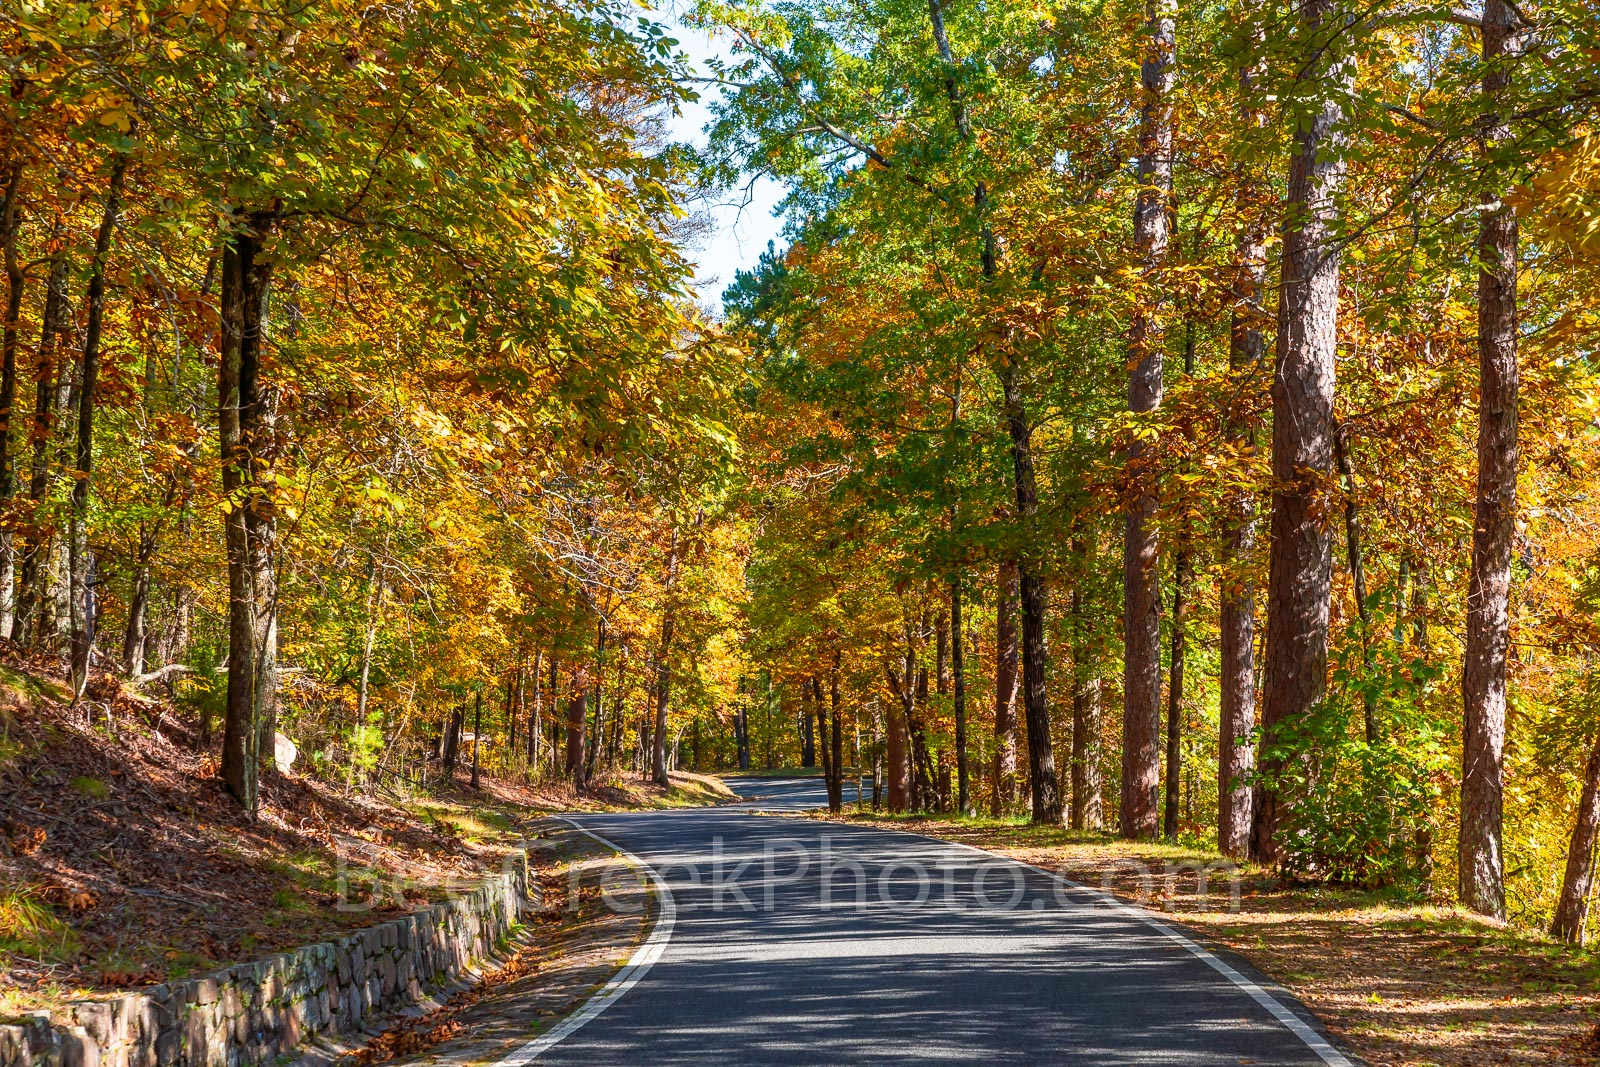 fall, autumn, yellow, orange, pine, cypress, trees, shades, yellow, orange, rust, colors, Tower Mountain, road, arkansas, national, forest, october, curves, sun light, tree line road, pines, maples, f, photo